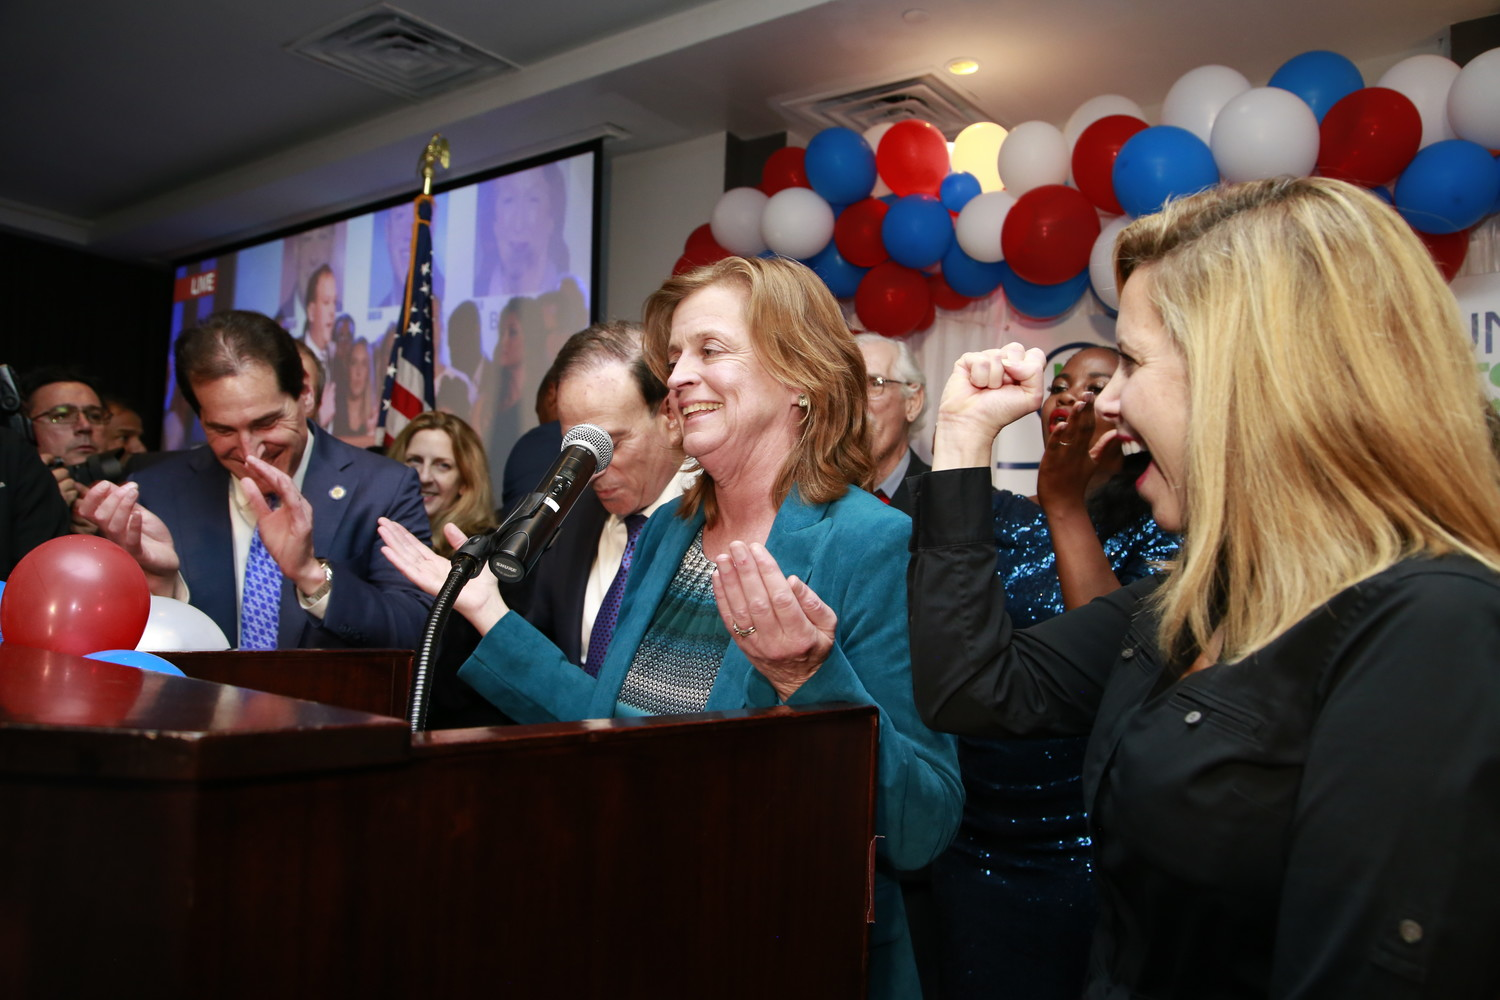 Democrat Judy Griffin unseated Lynbrook resident Brian Curran in the 21st Assembly District.